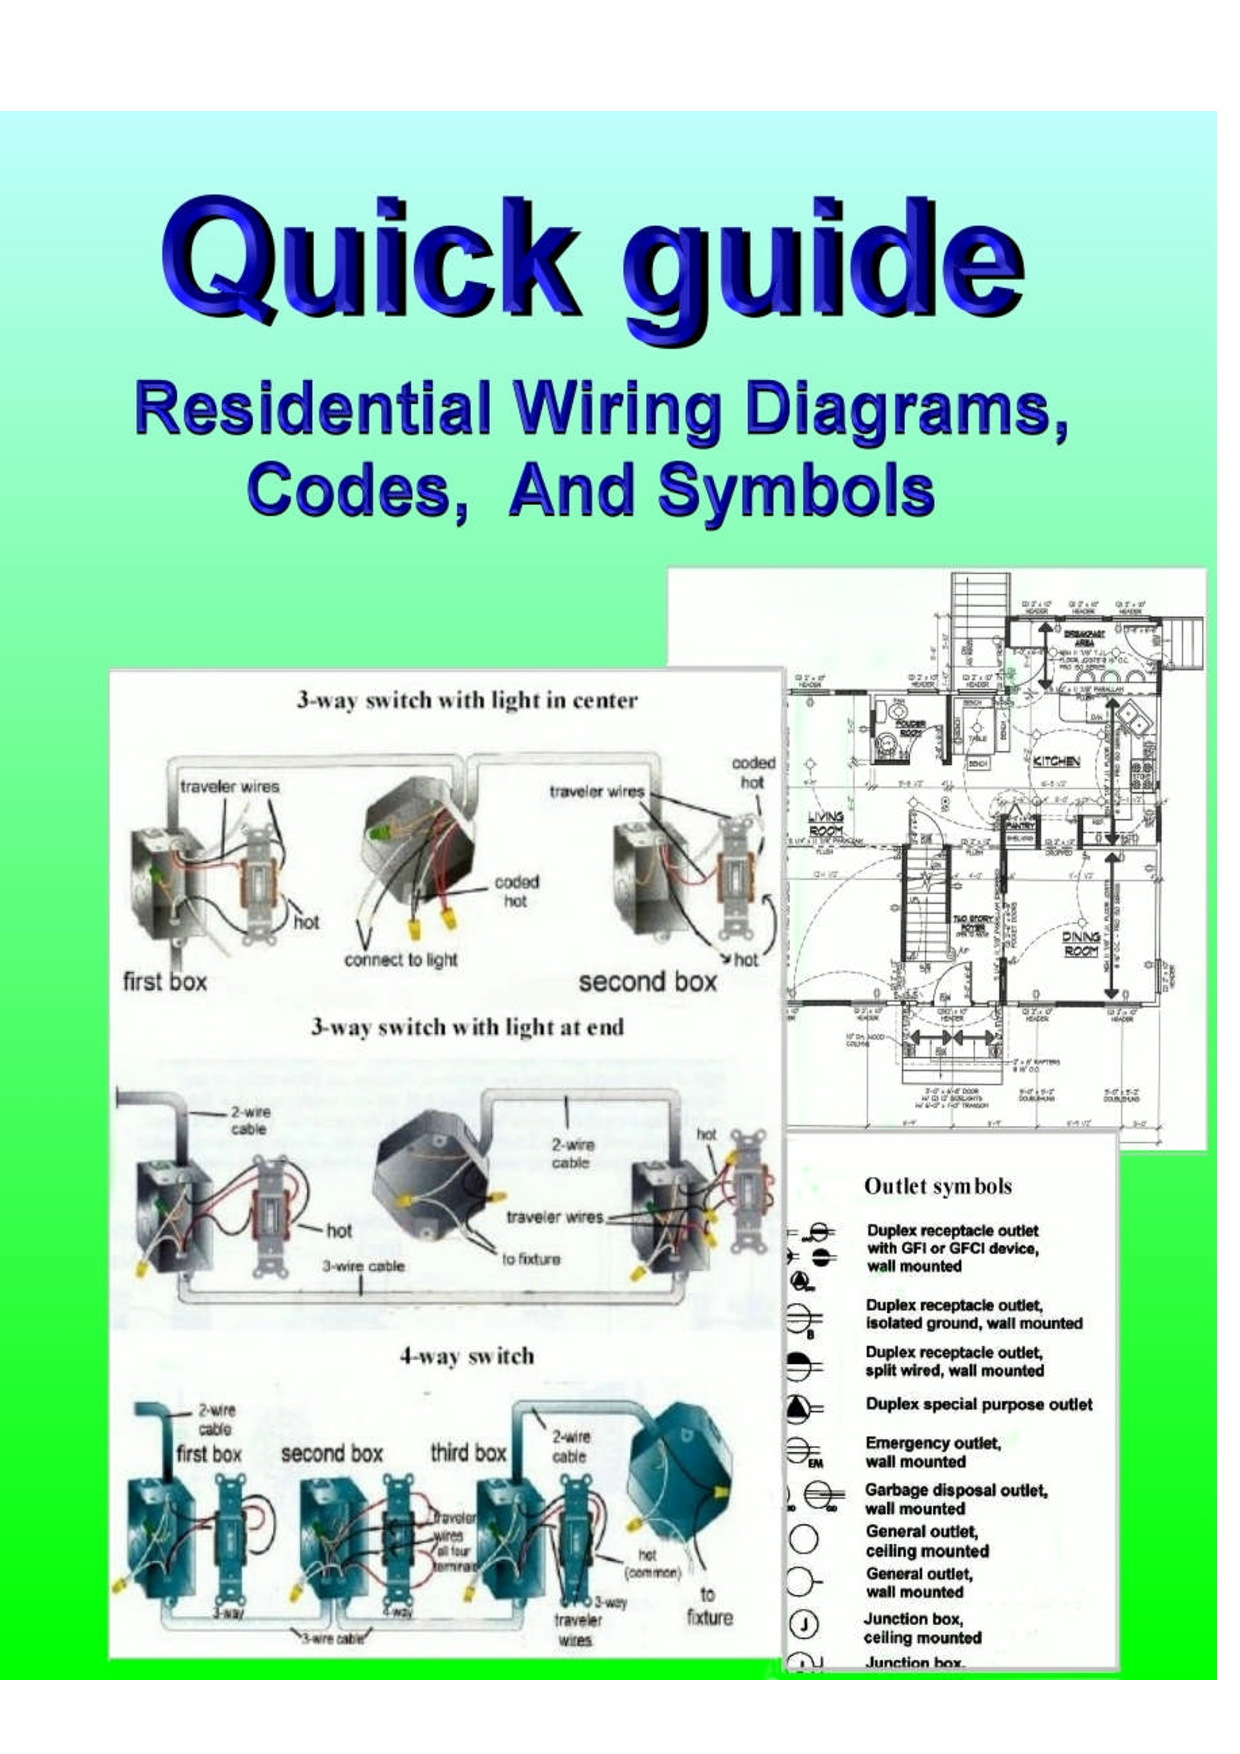 home electrical wiring diagrams pdf download legal documents 39 Basic Home Wiring For Dummies